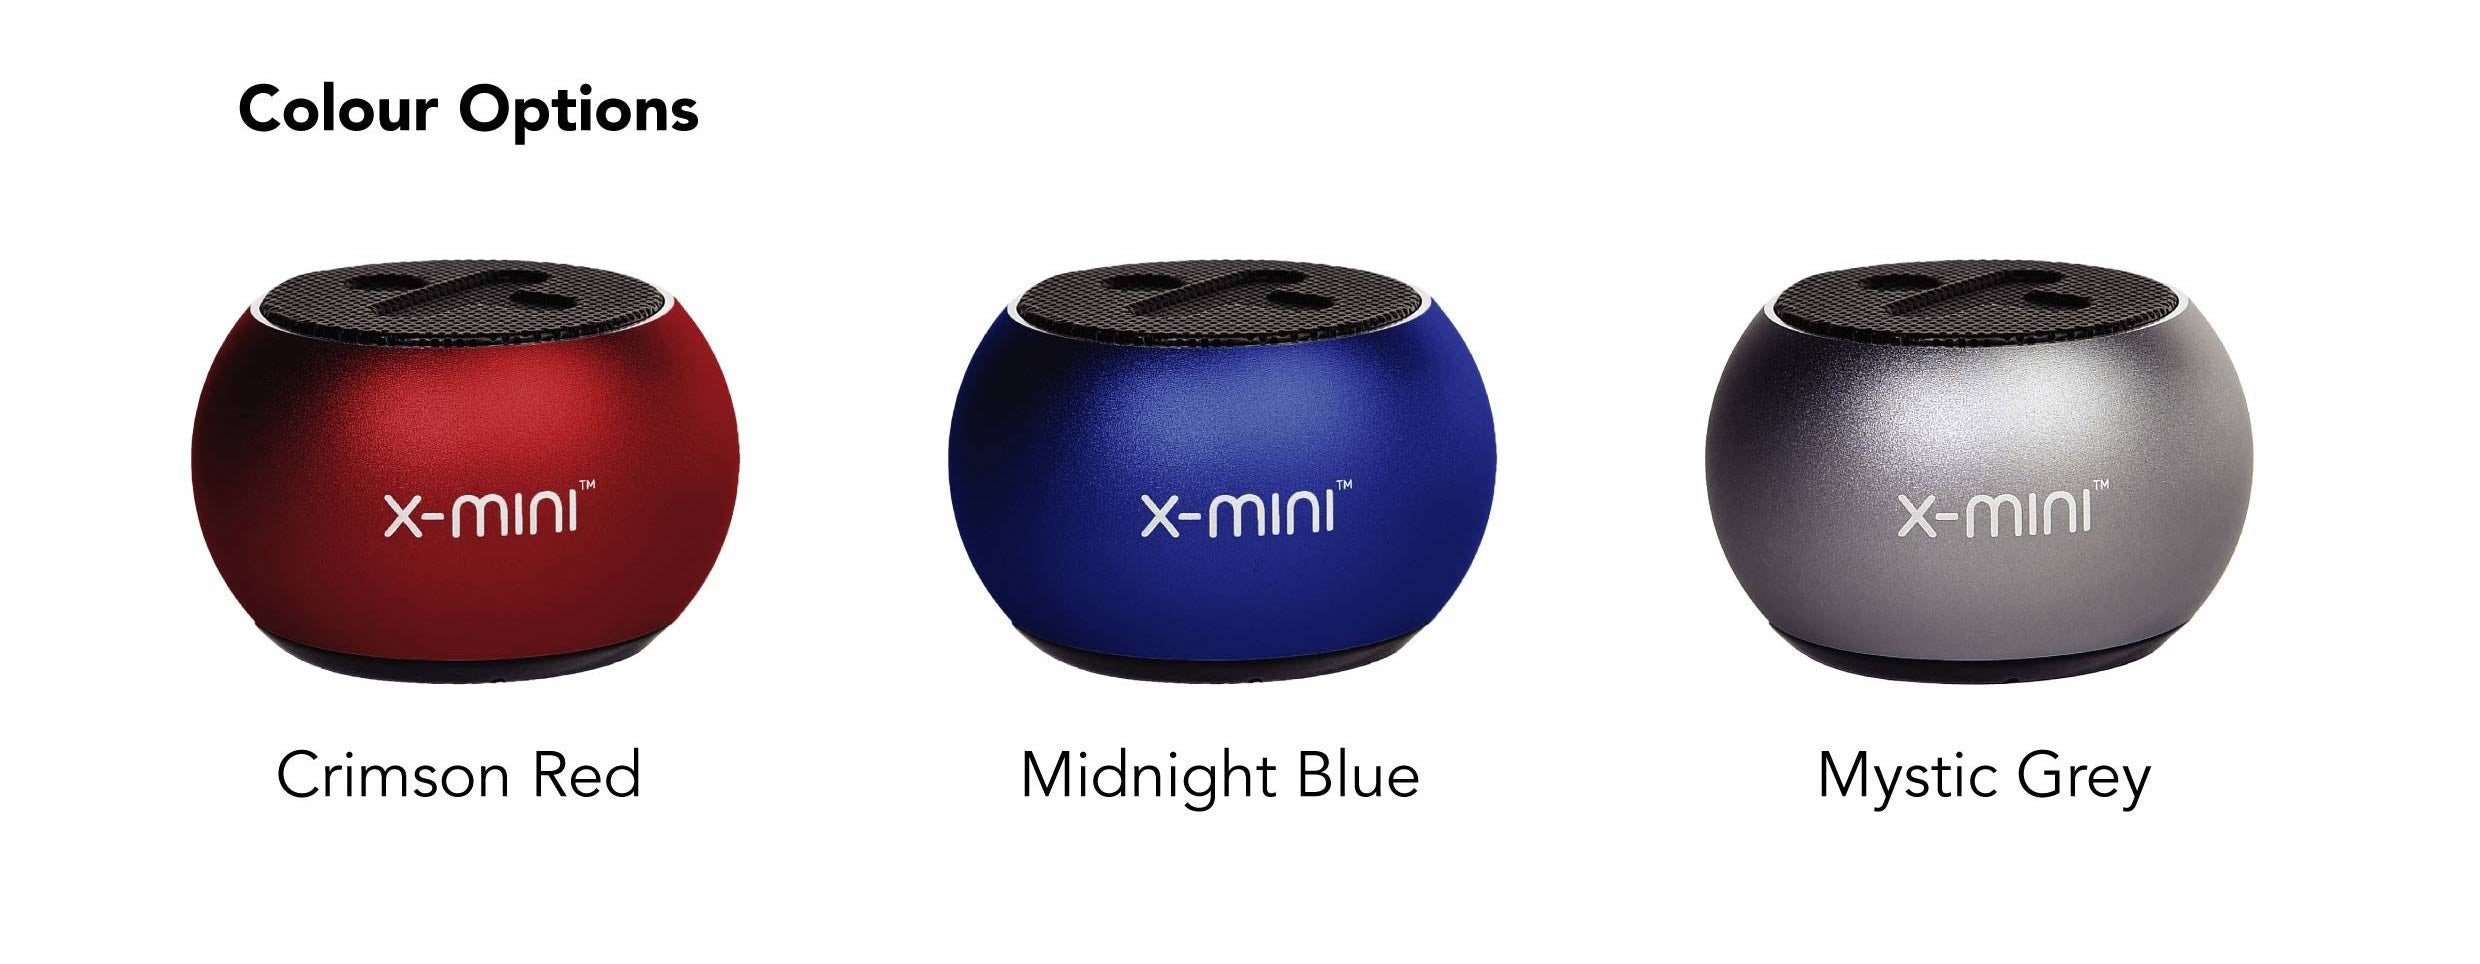 X-mini-Click-2-True-Wireless-Portable-Bluetooth-Stereo-Speaker-Colour-Options